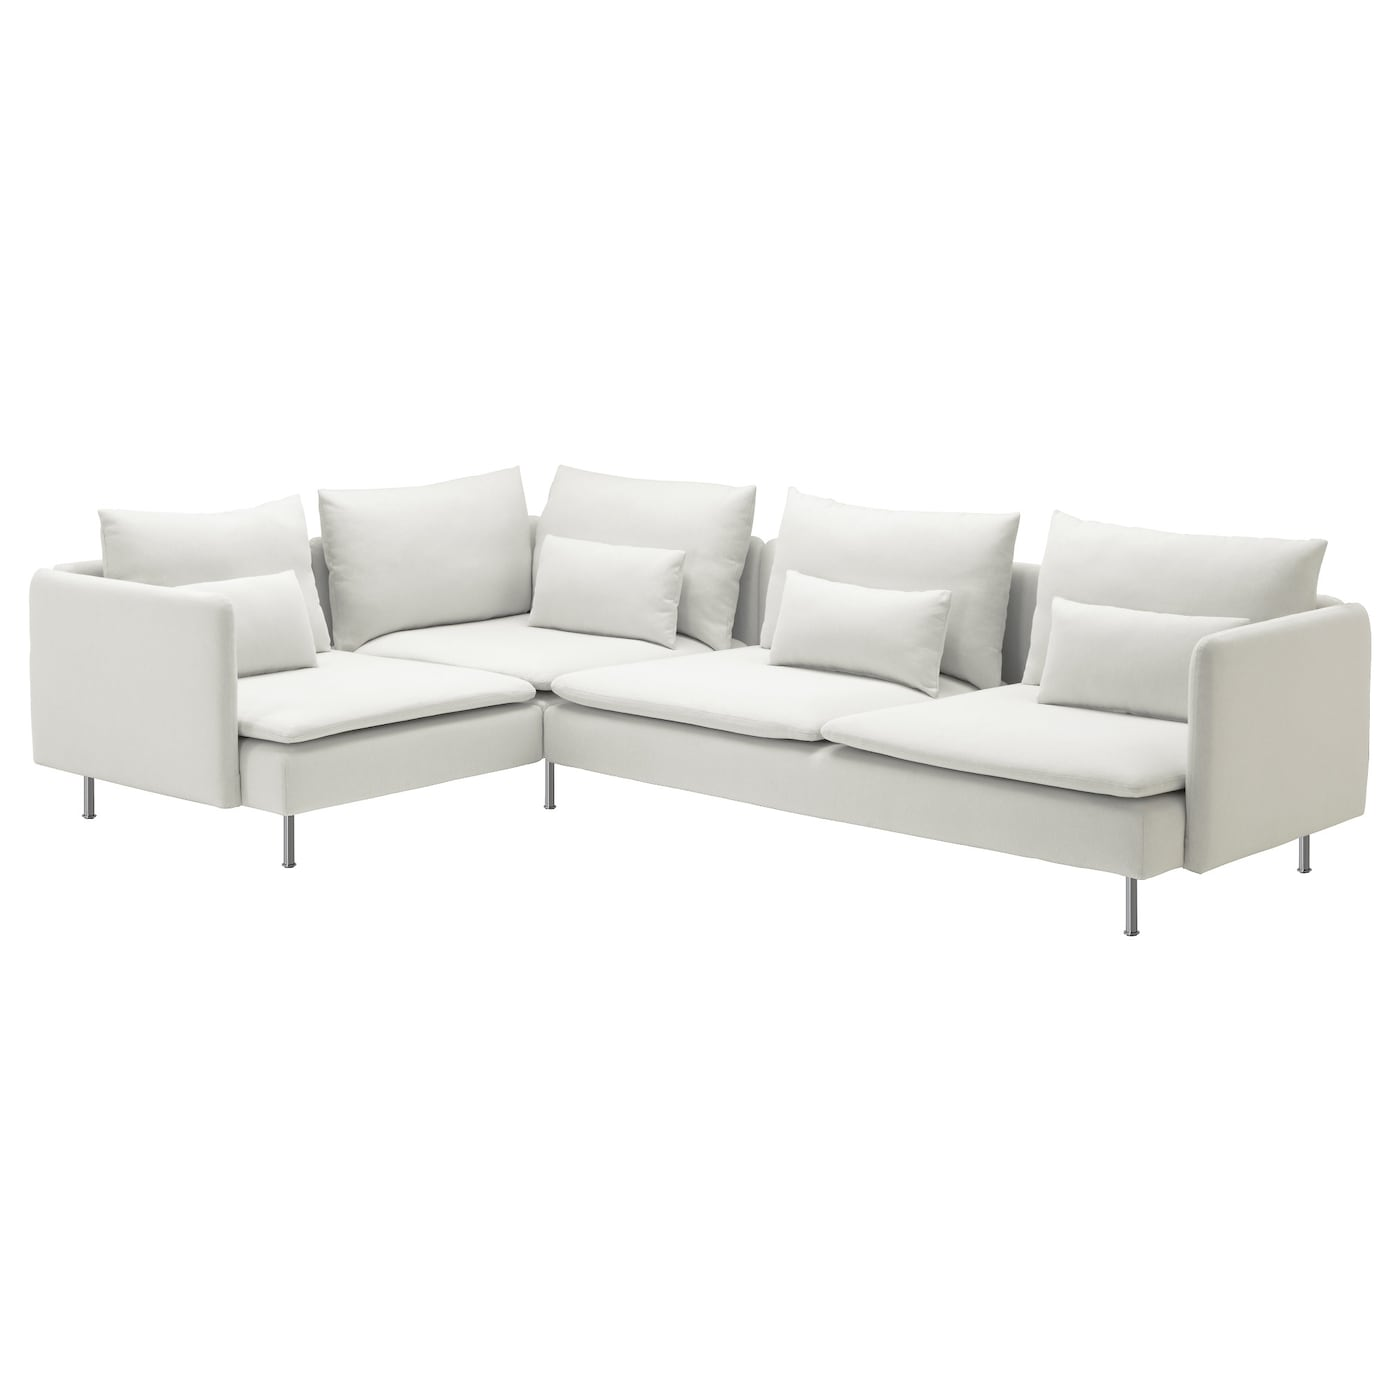 S derhamn corner sofa 2 1 finnsta white 291x198 cm ikea for White divan chair